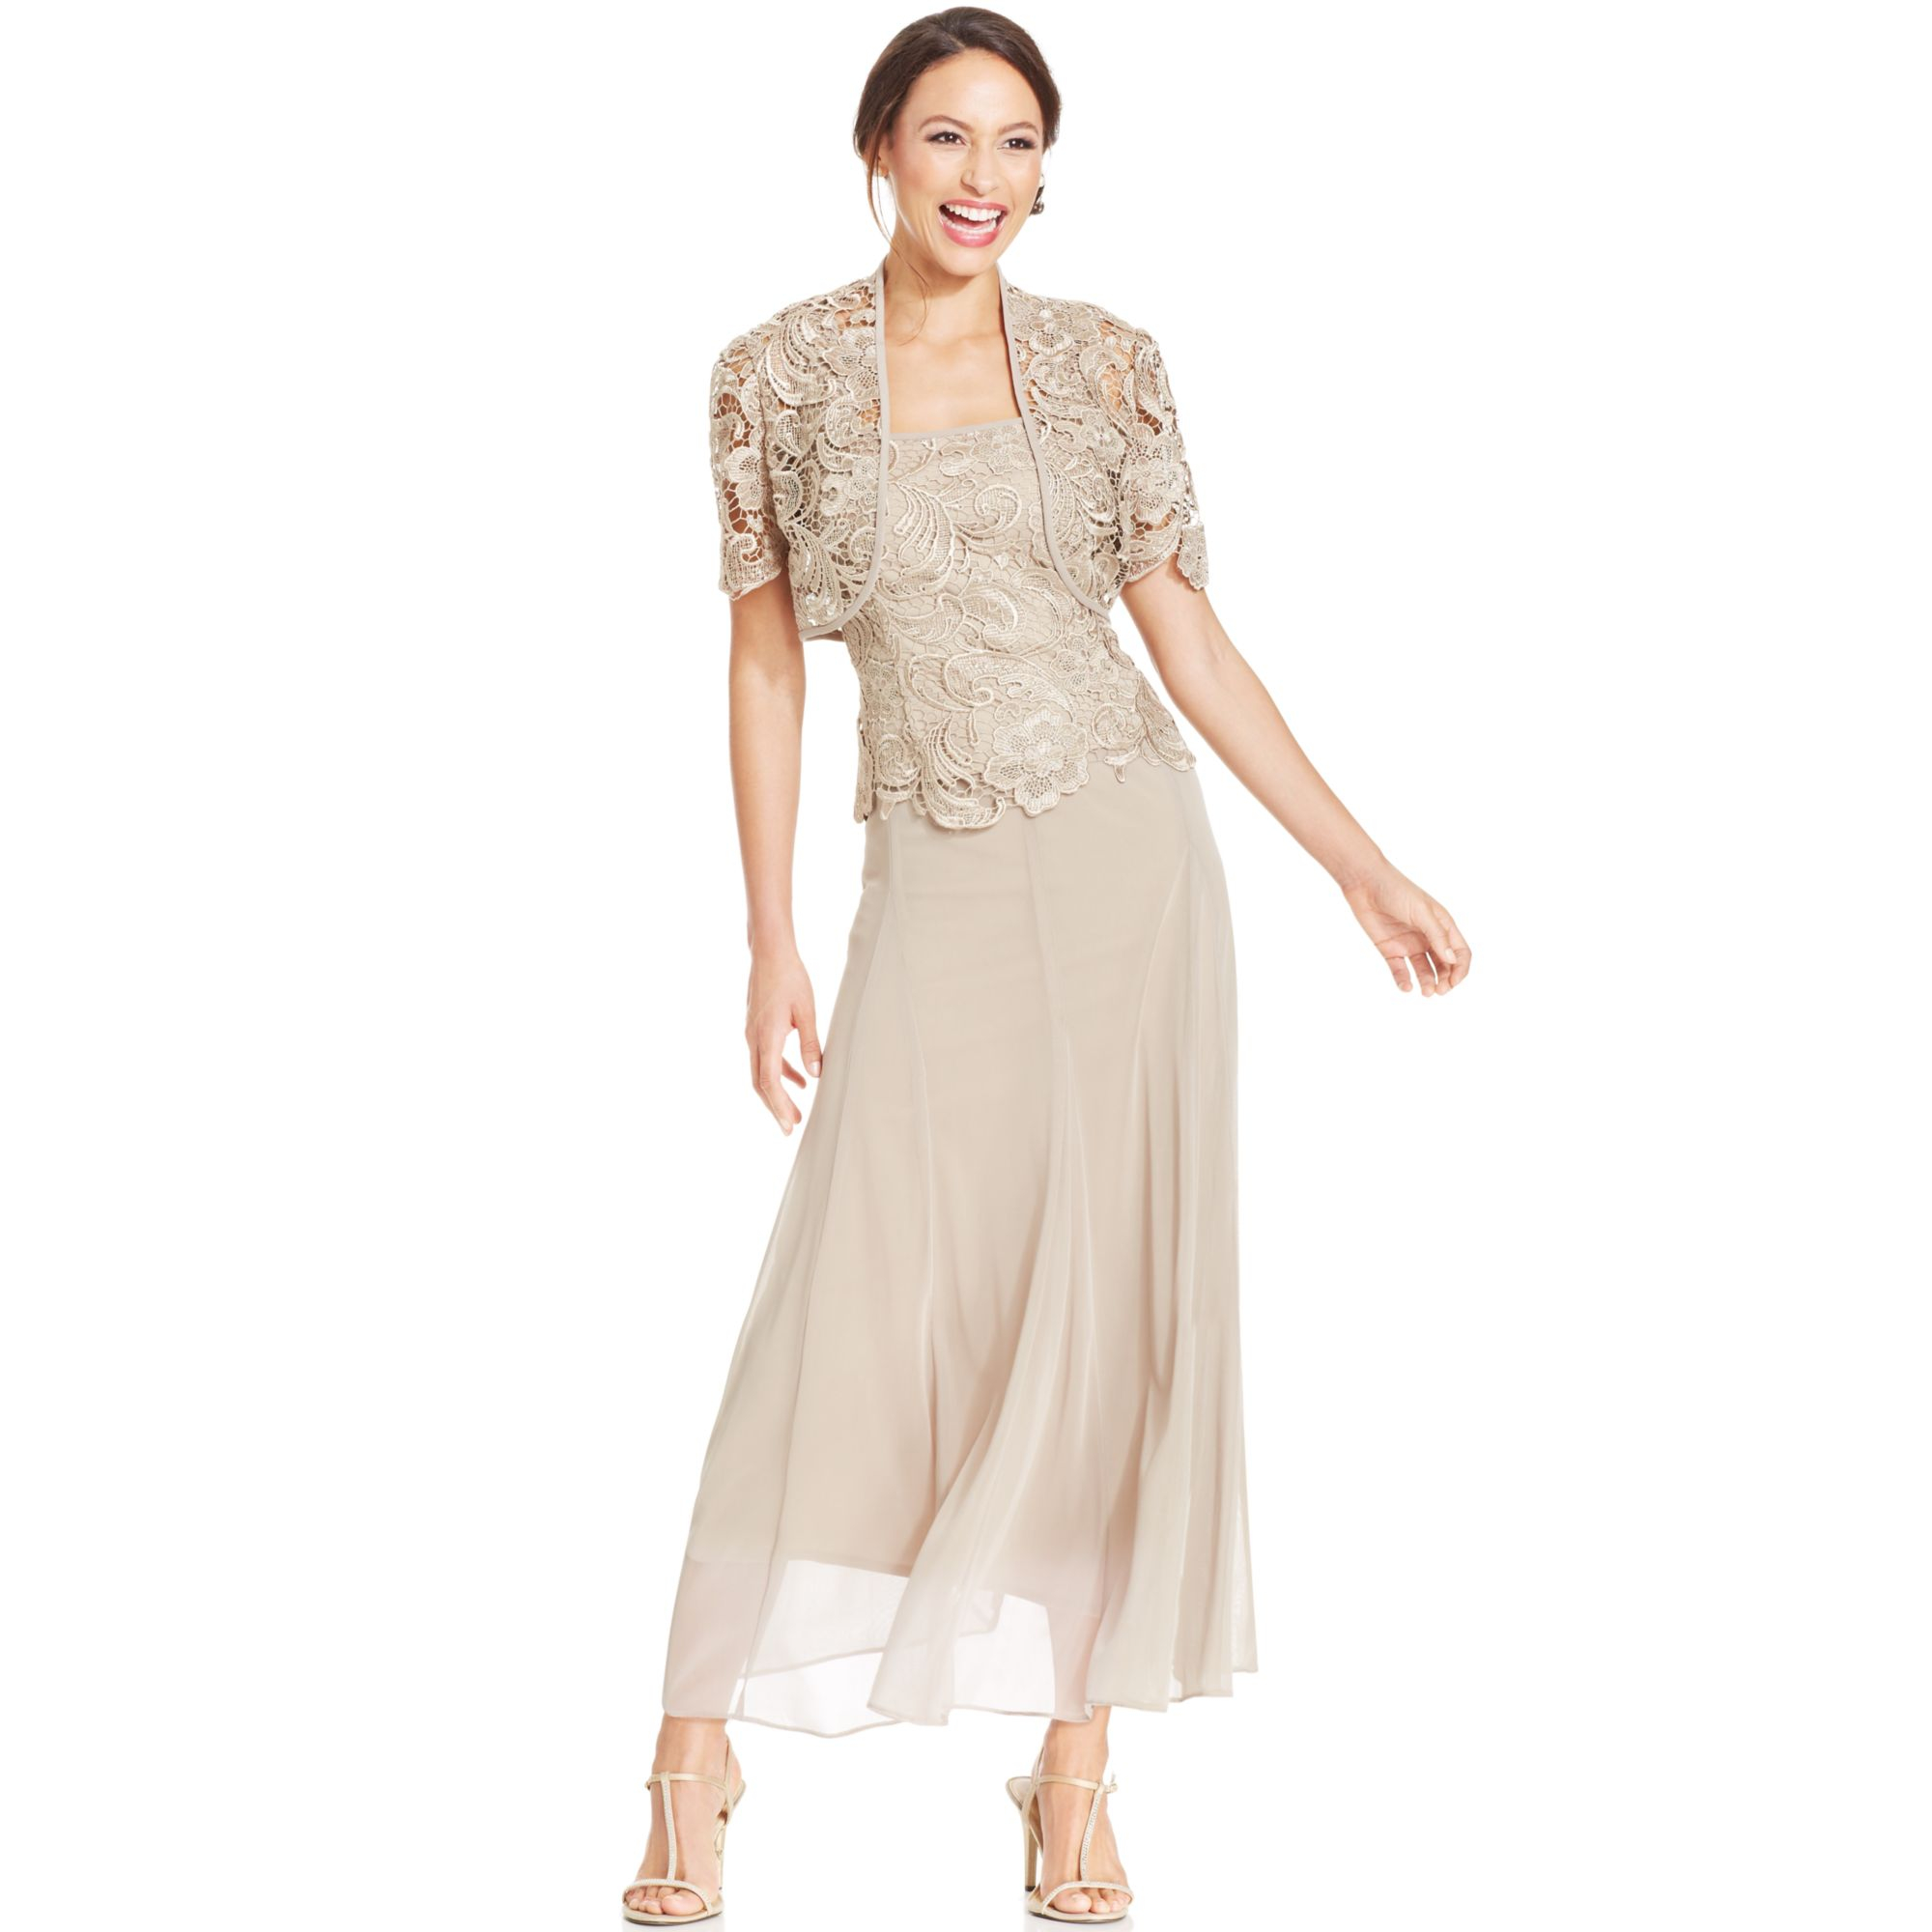 Lyst - Alex Evenings Lace Chiffon Dress and Jacket in Natural